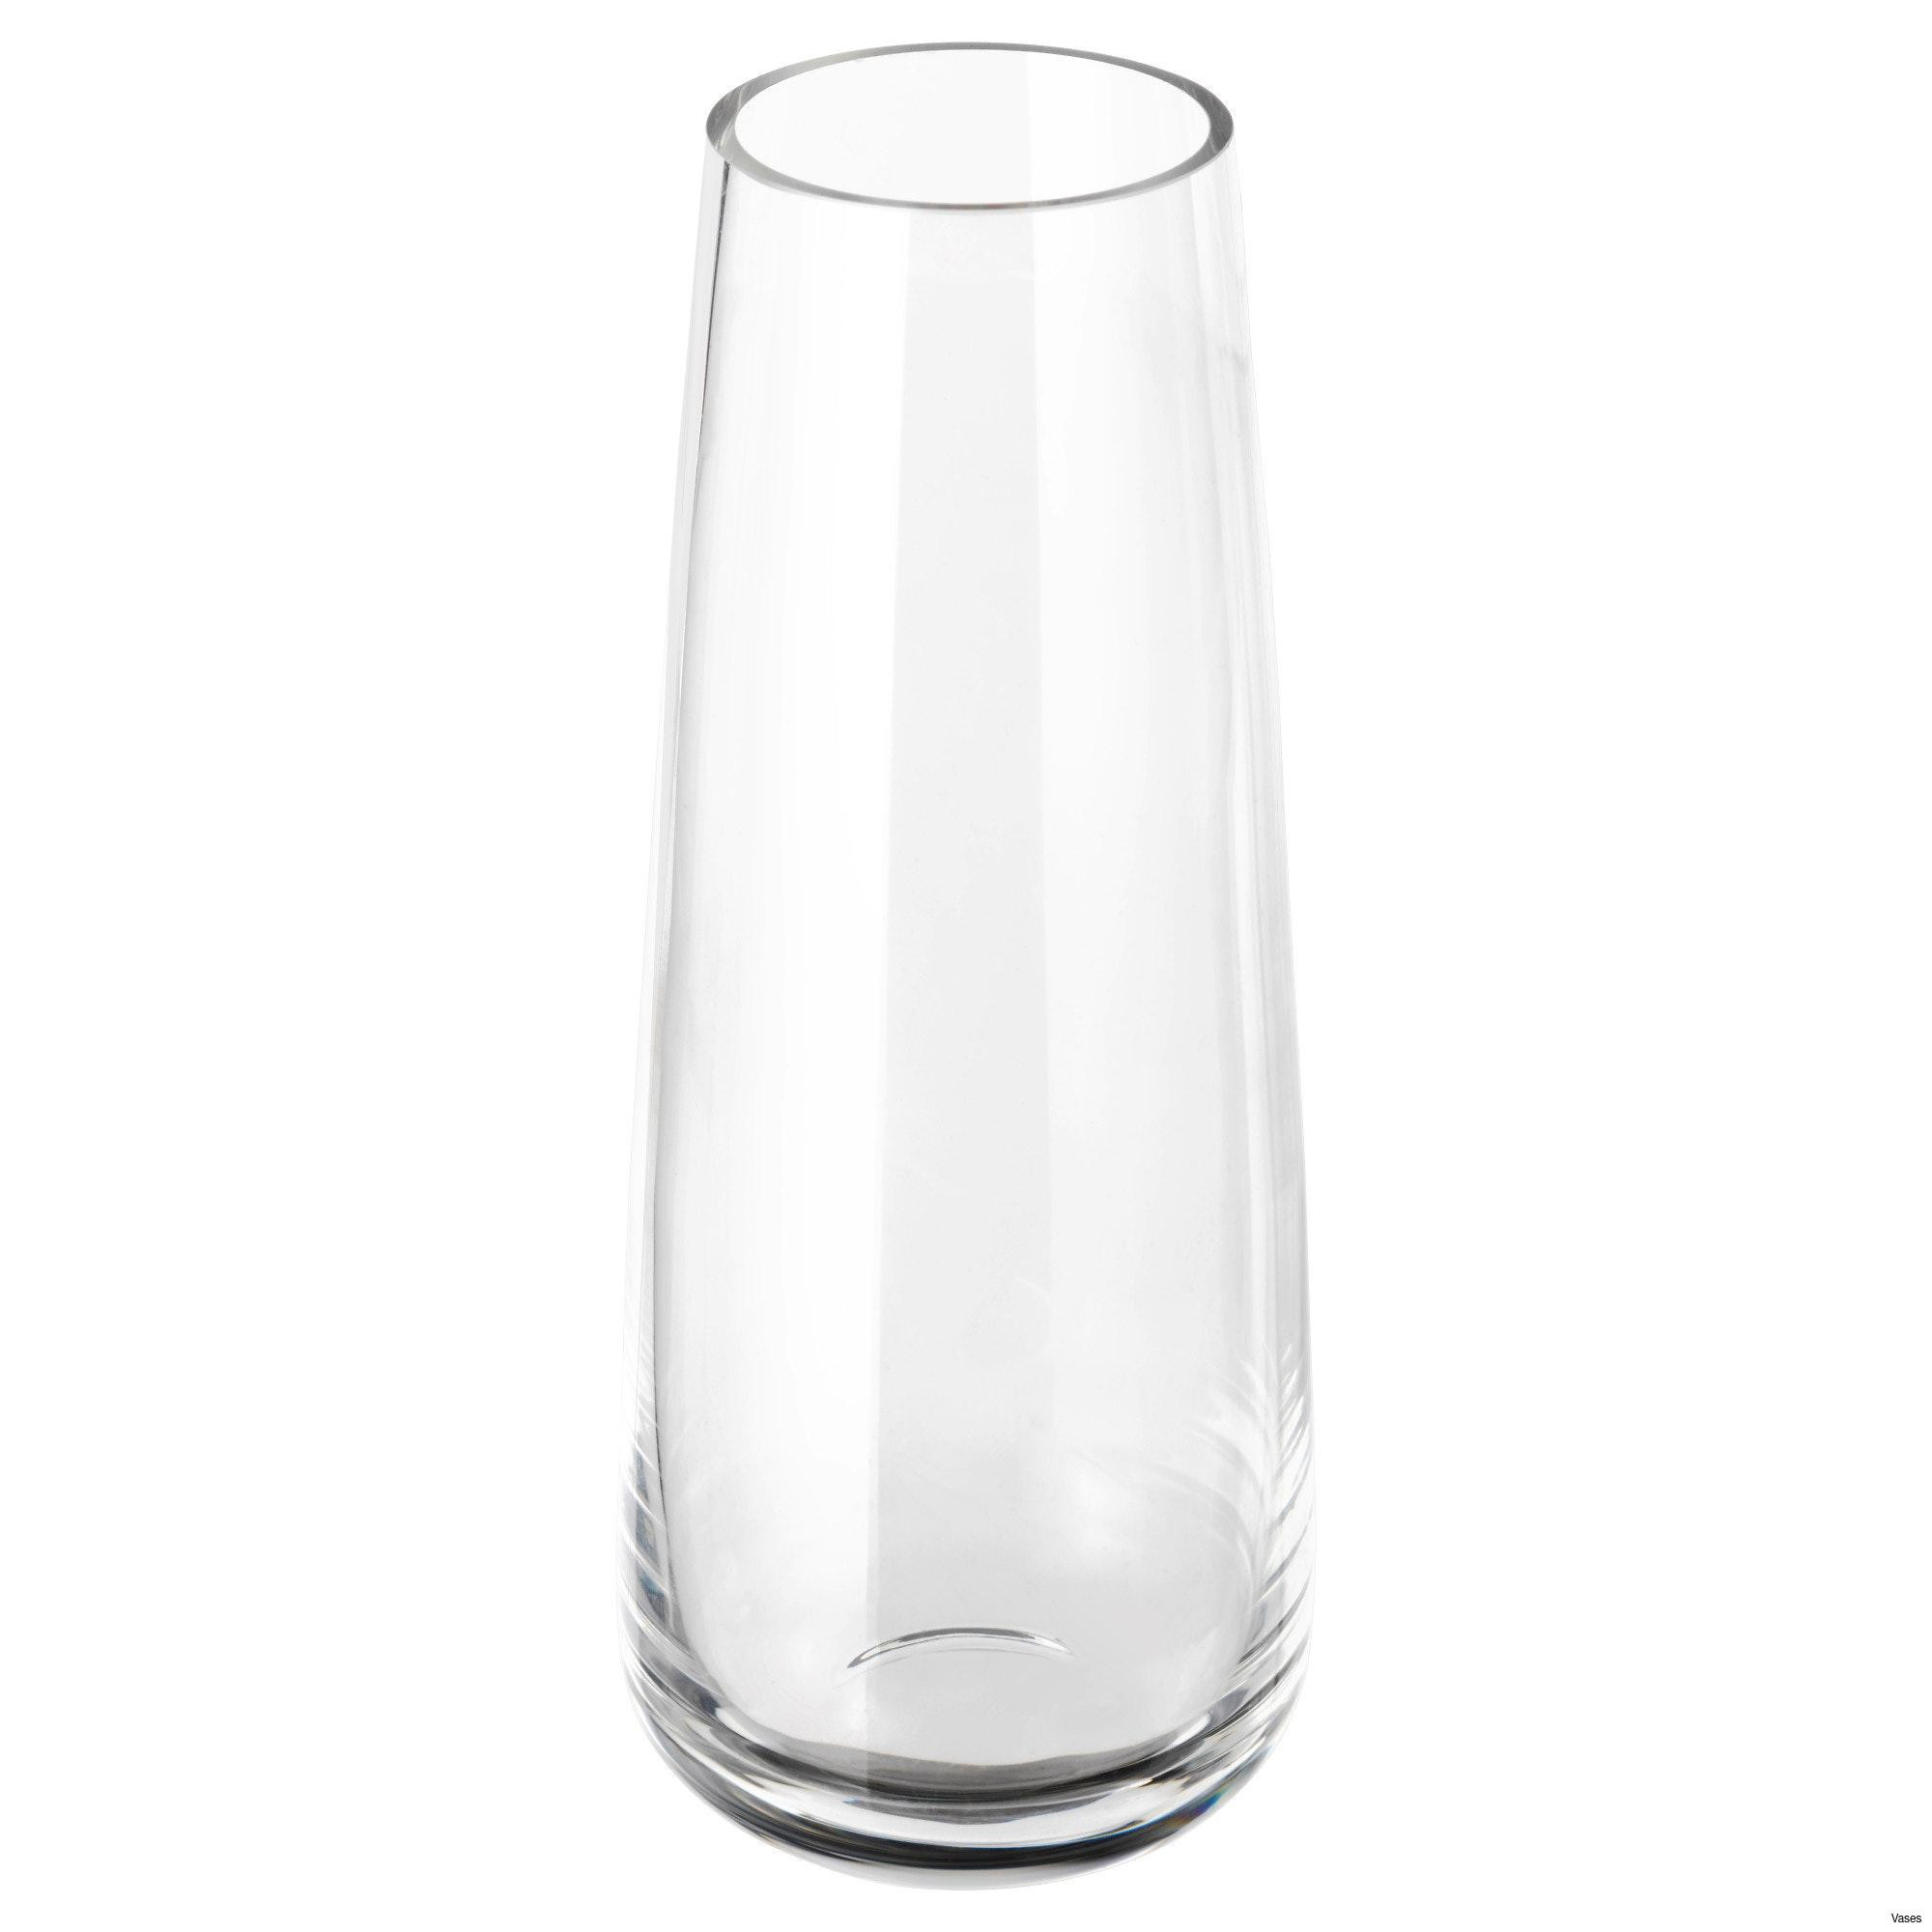 white glass vase of 35 collection black and white rooms pictures living room decor ideas intended for chairs living room ikea awesome living room ikea vases awesome pe s5h vases ikea white i